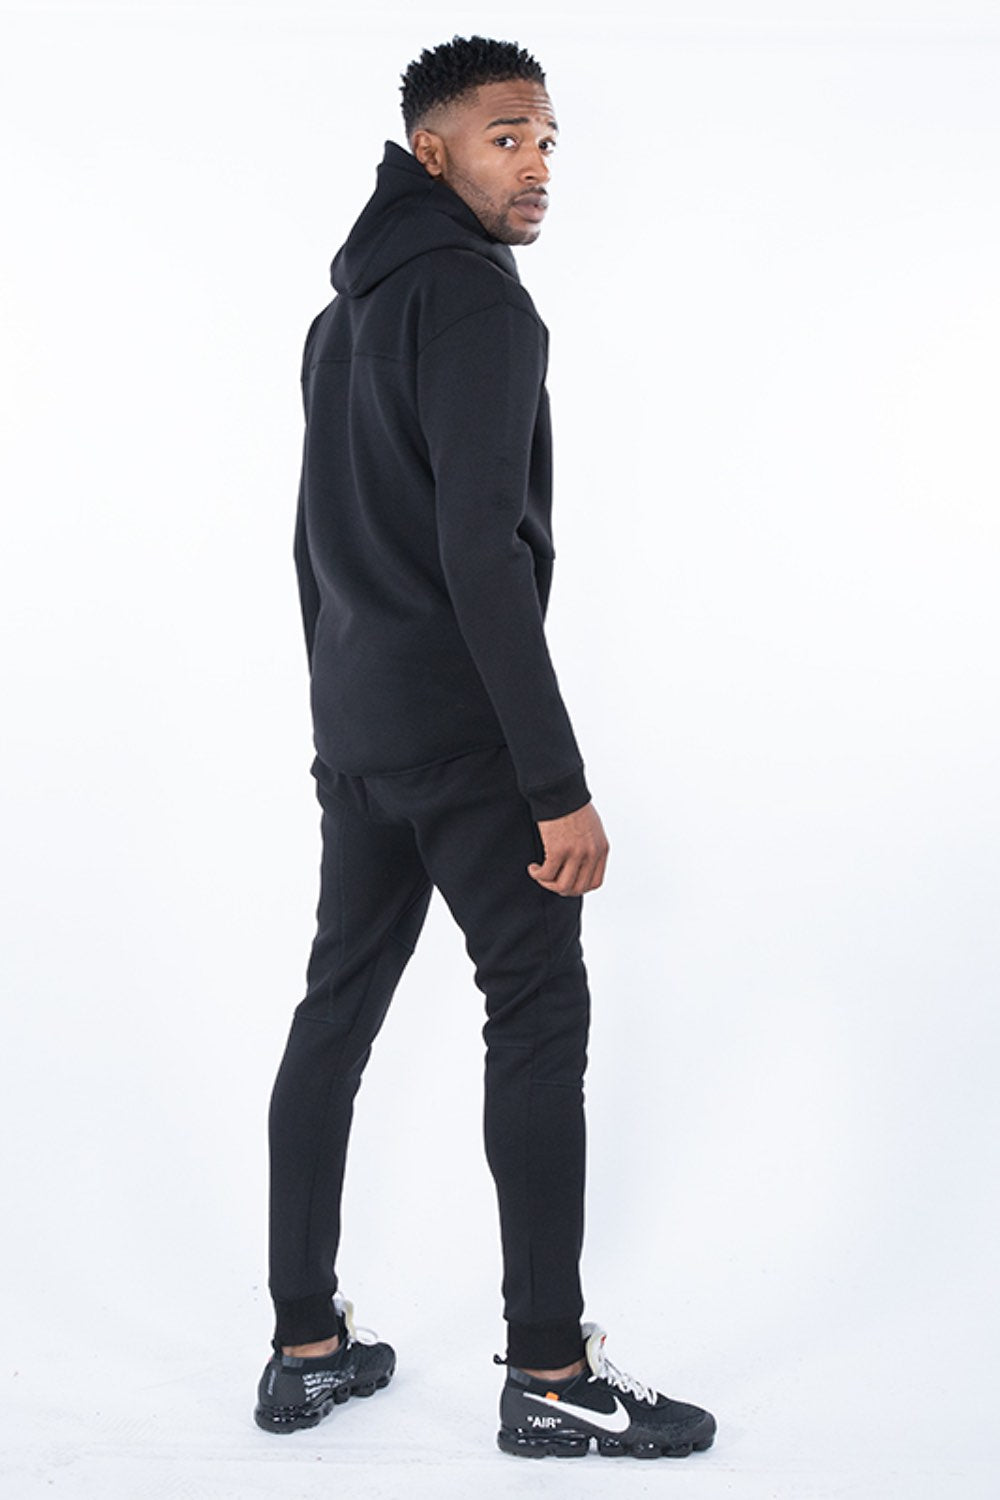 Fresh Ego Kid Scuba Tracksuit - Black - 5